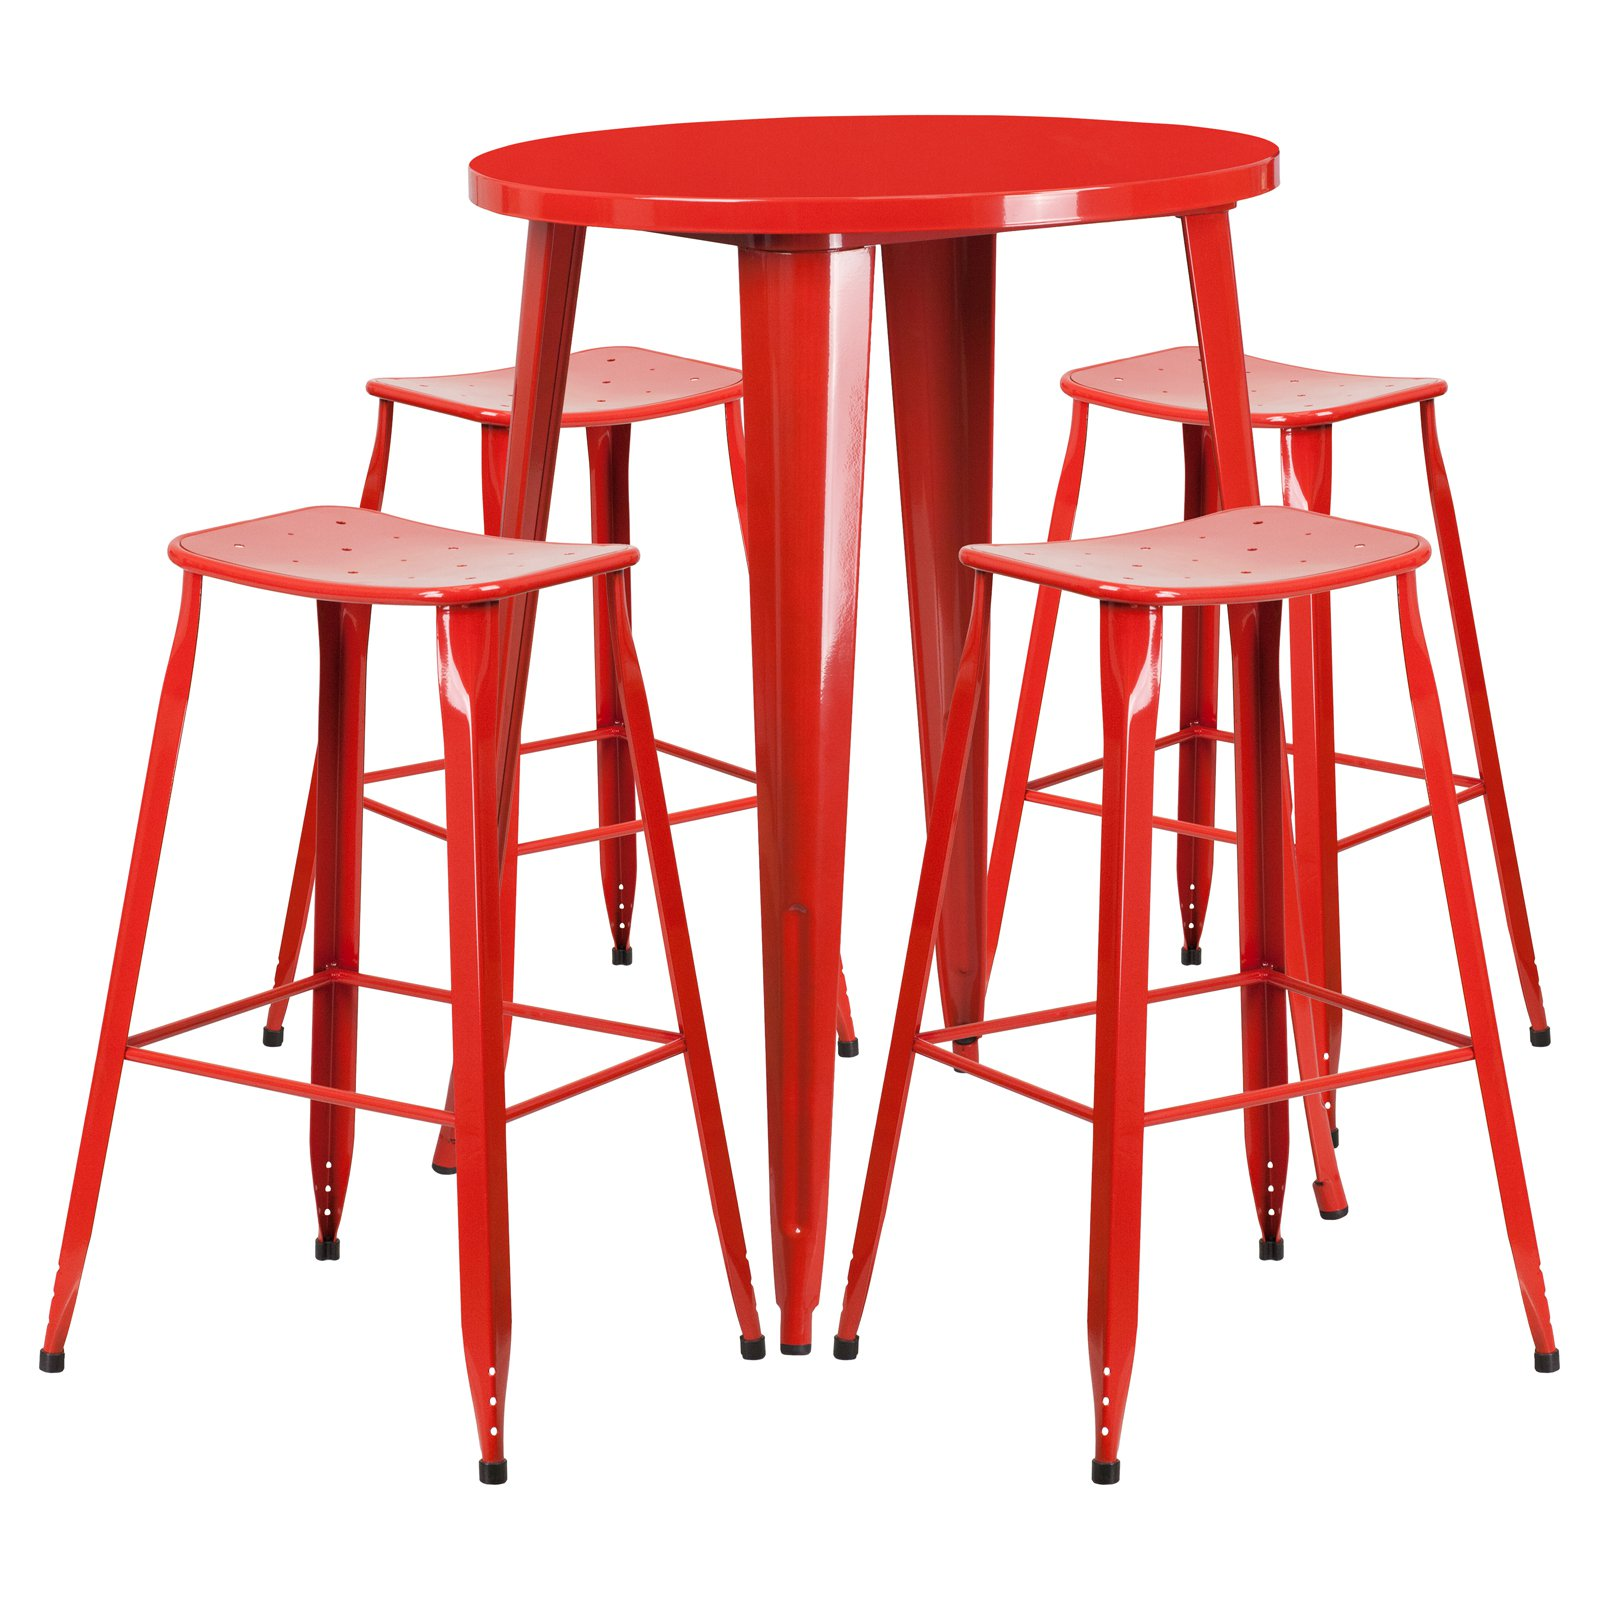 Flash Furniture 30'' Round Red Metal Indoor-Outdoor Bar Table Set with 4 Backless Saddle Seat Barstools